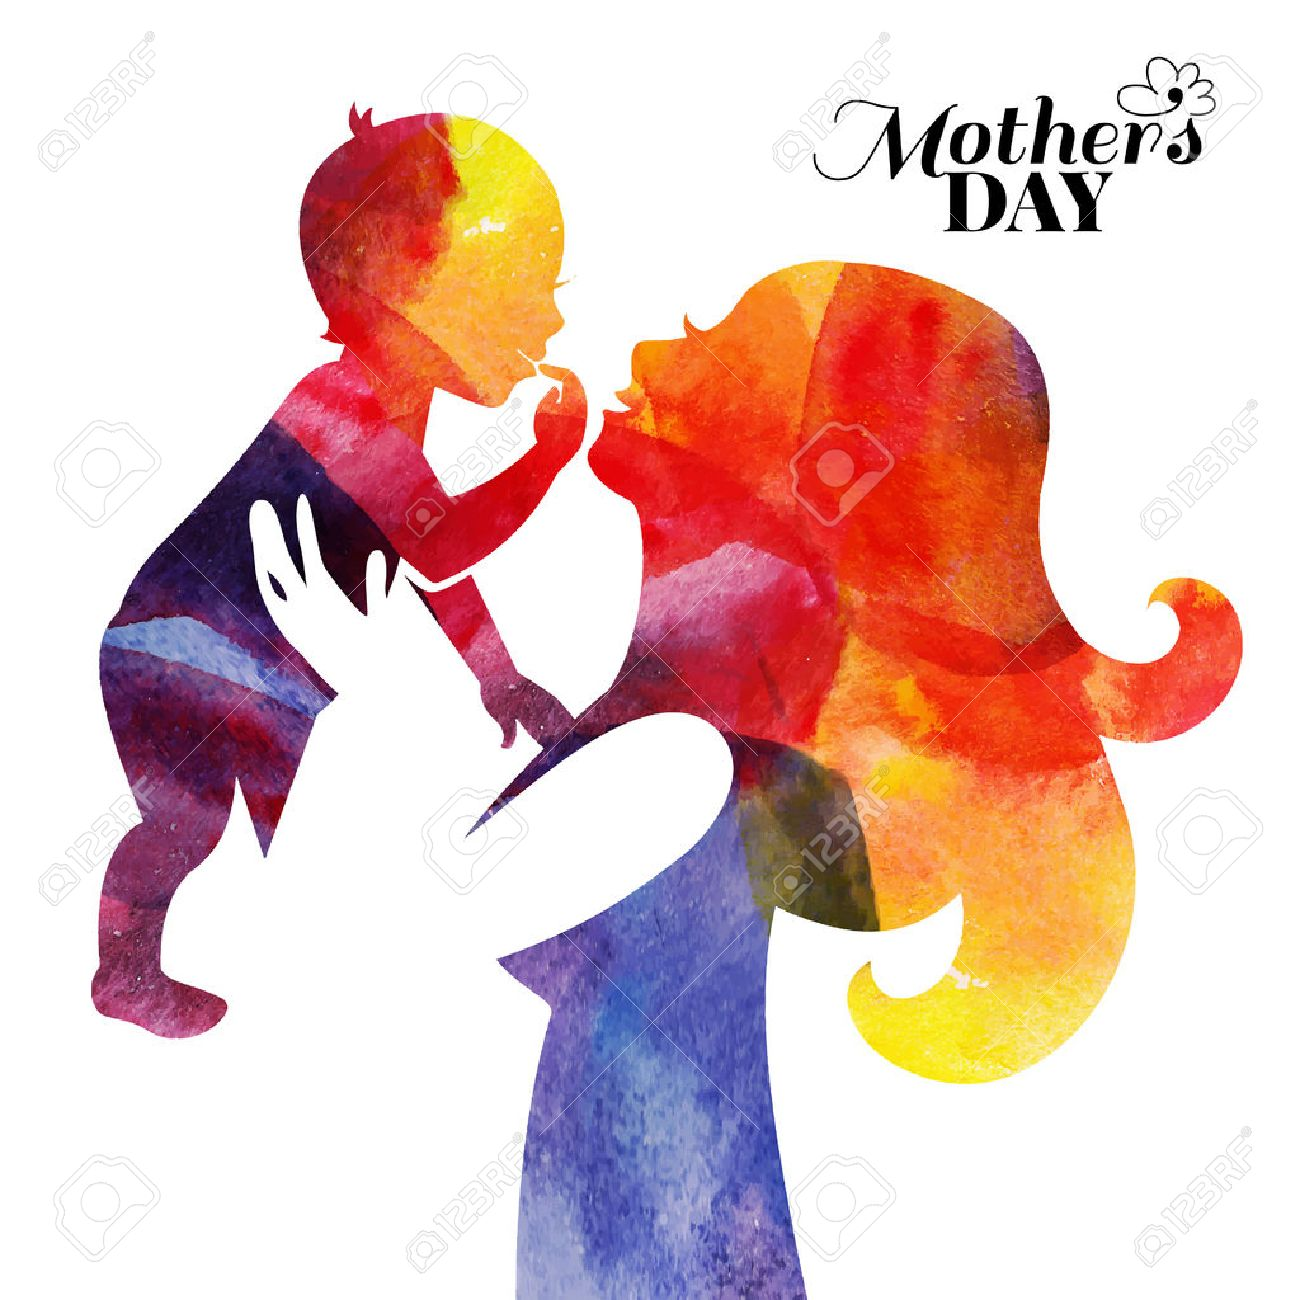 [Image: 34661112-watercolor-mother-silhouette-wi...beauti.jpg]